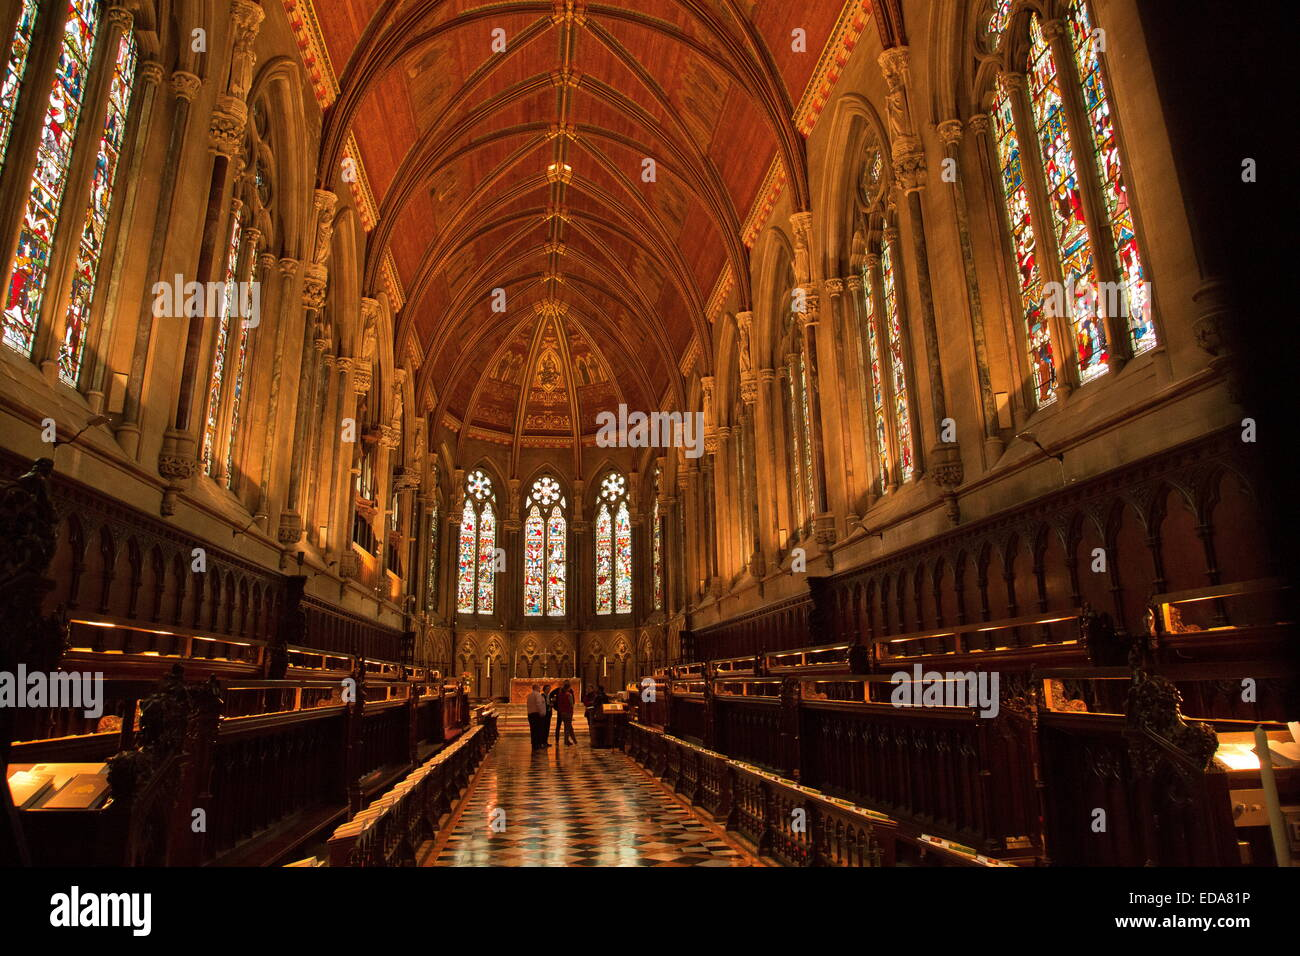 The interior of the chapel at St John's College, Cambridge, UK. - Stock Image